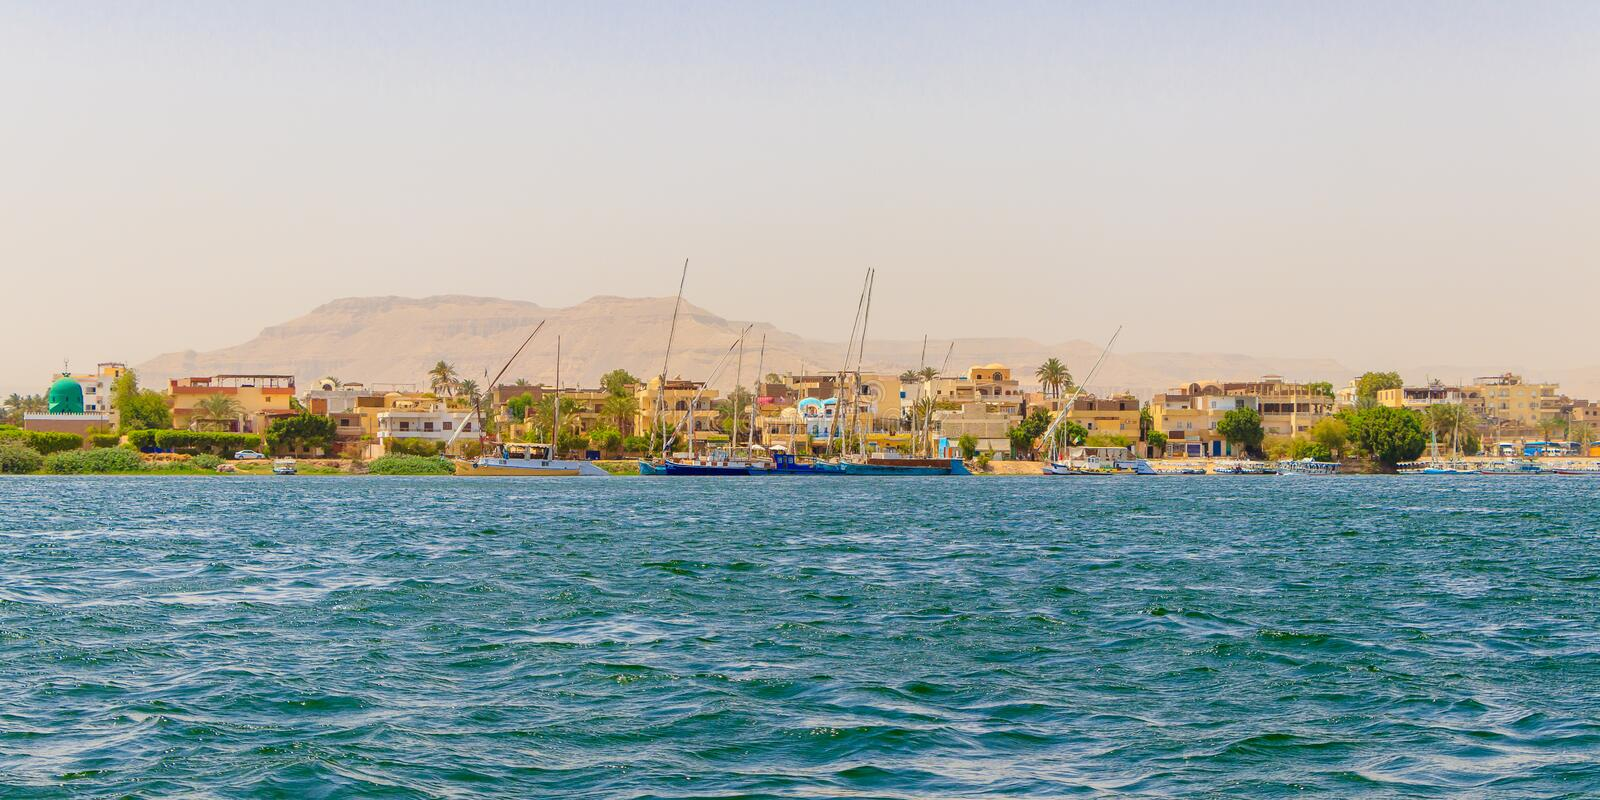 Residential buildings on the Nile river with sailboats in Luxor, Egypt. Nile River is the longest river in the world, called the father of African rivers. Its stock photography